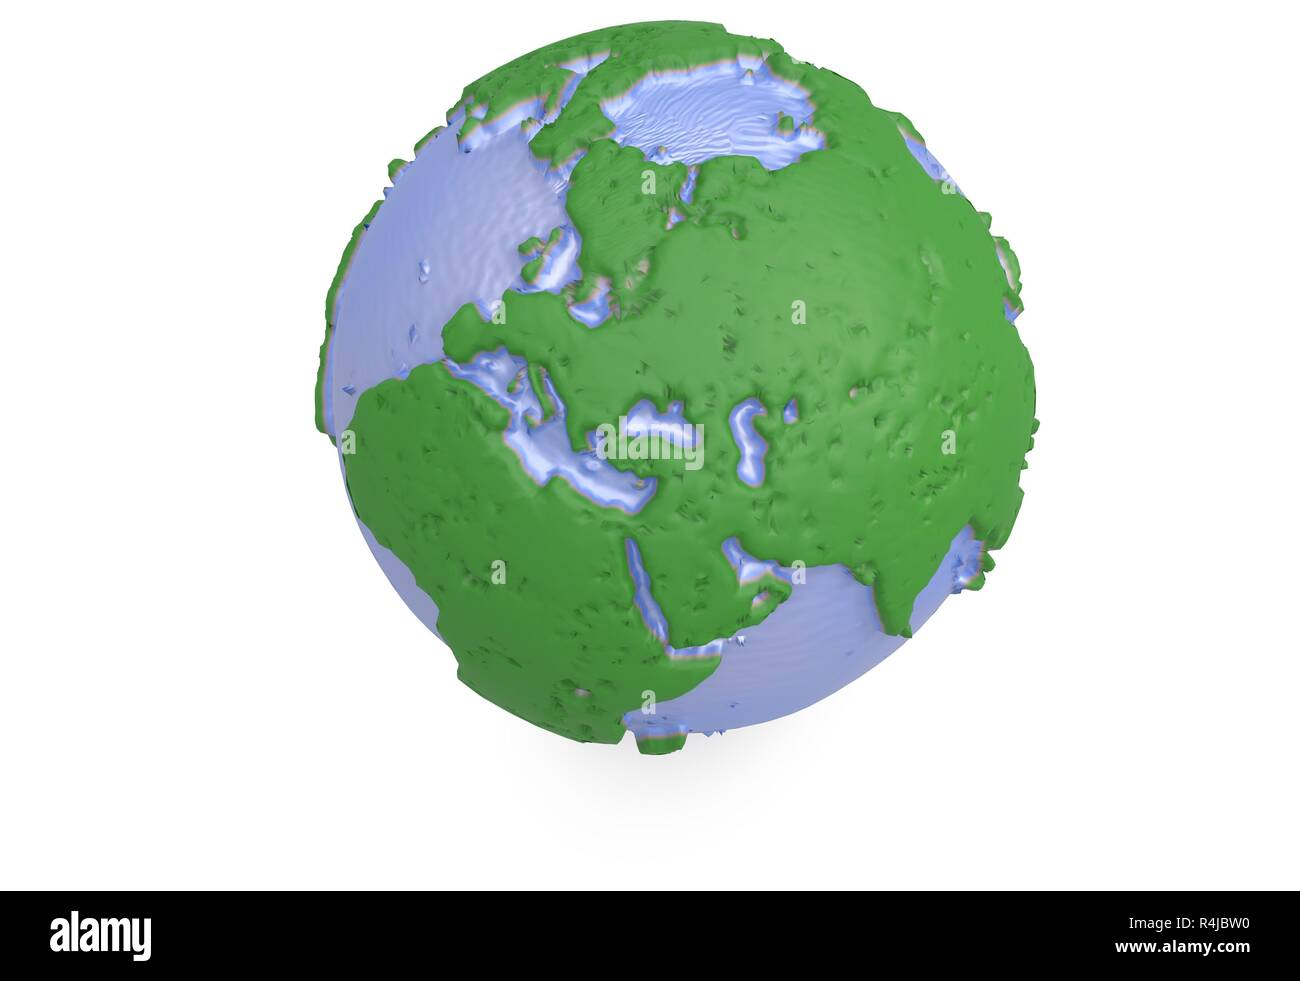 Earth, world map. polygonal globe europe. 3d illustration Stock Photo